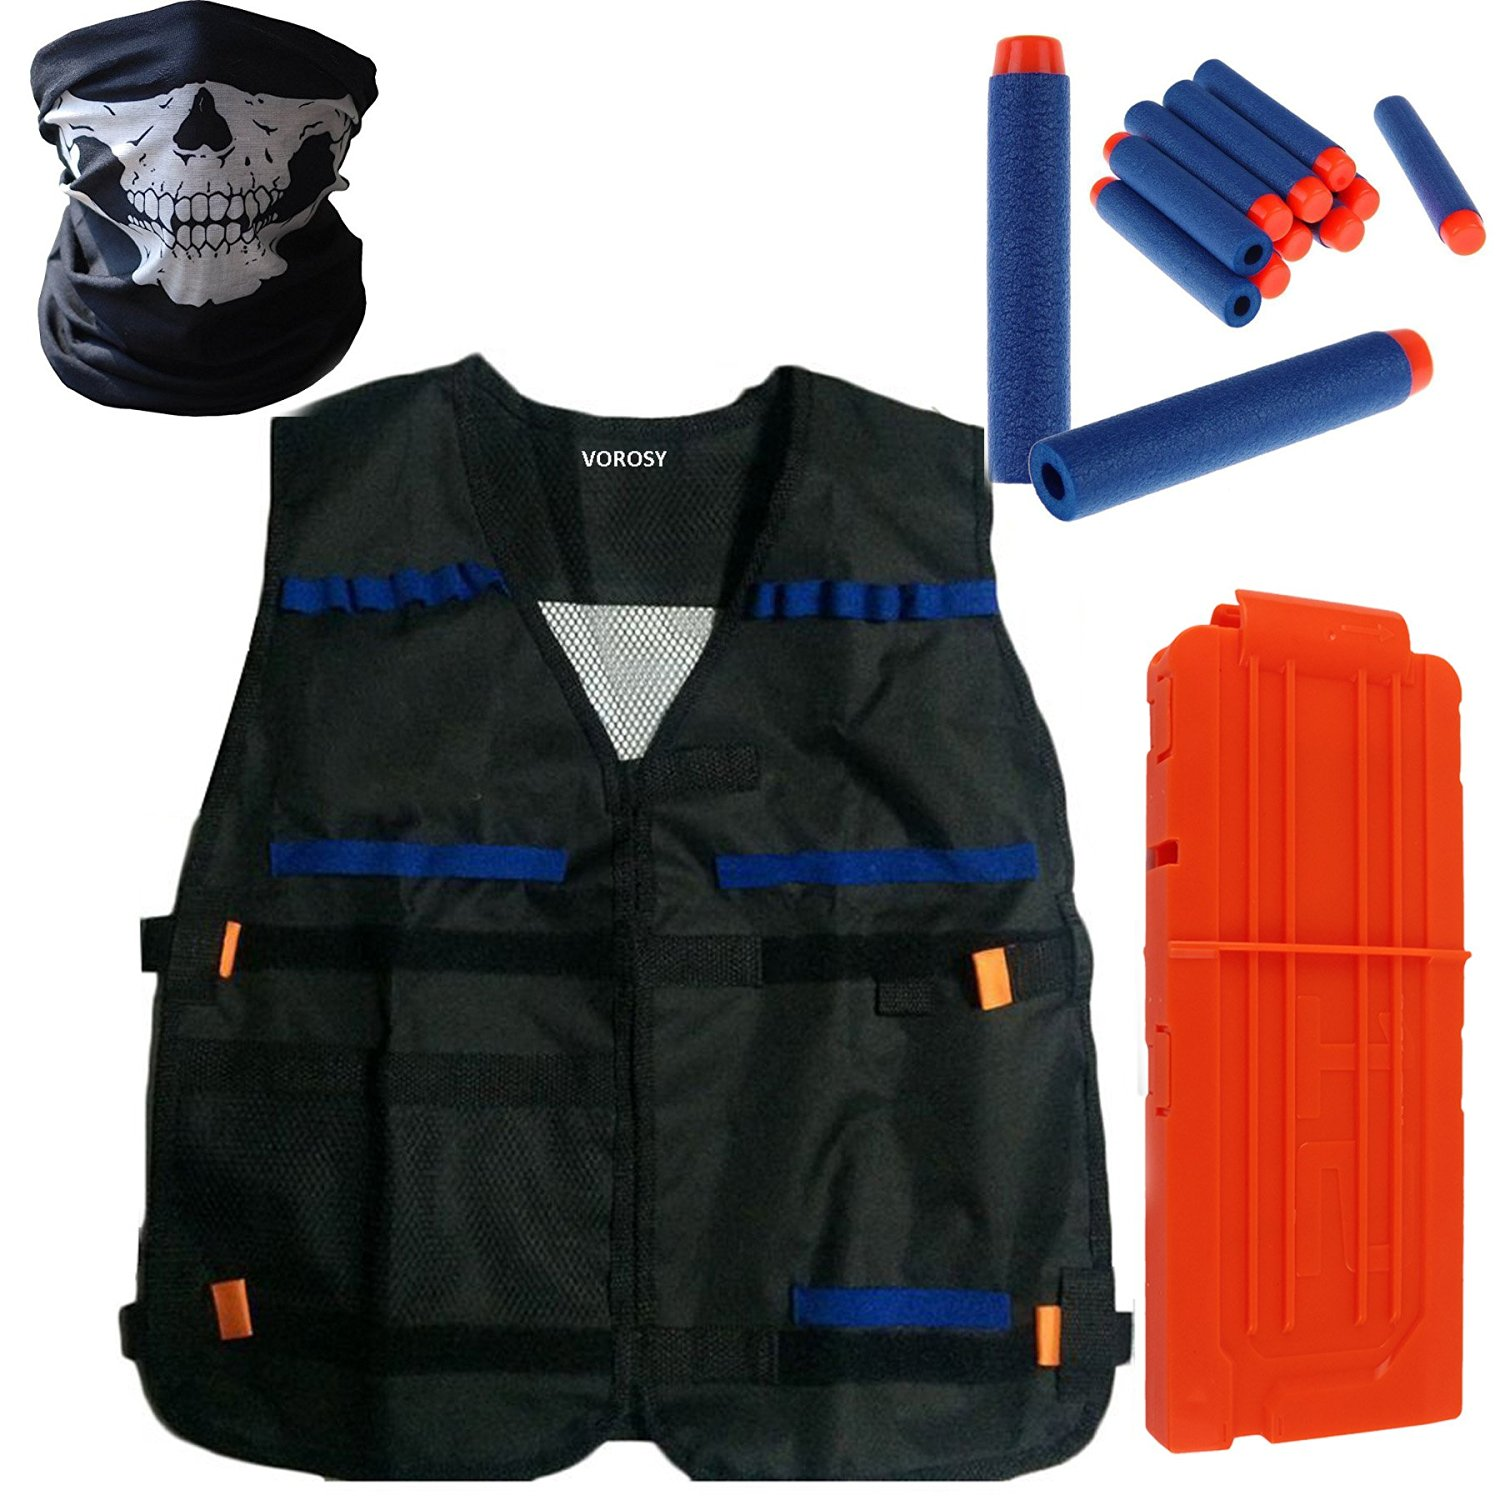 VOROSY 12 Refill Bullet Darts Quick Reload Clip for Toy Gun Nerf N-strike Elite Blasters with tactical vest + 12pcs blue toy darts + face tube mask